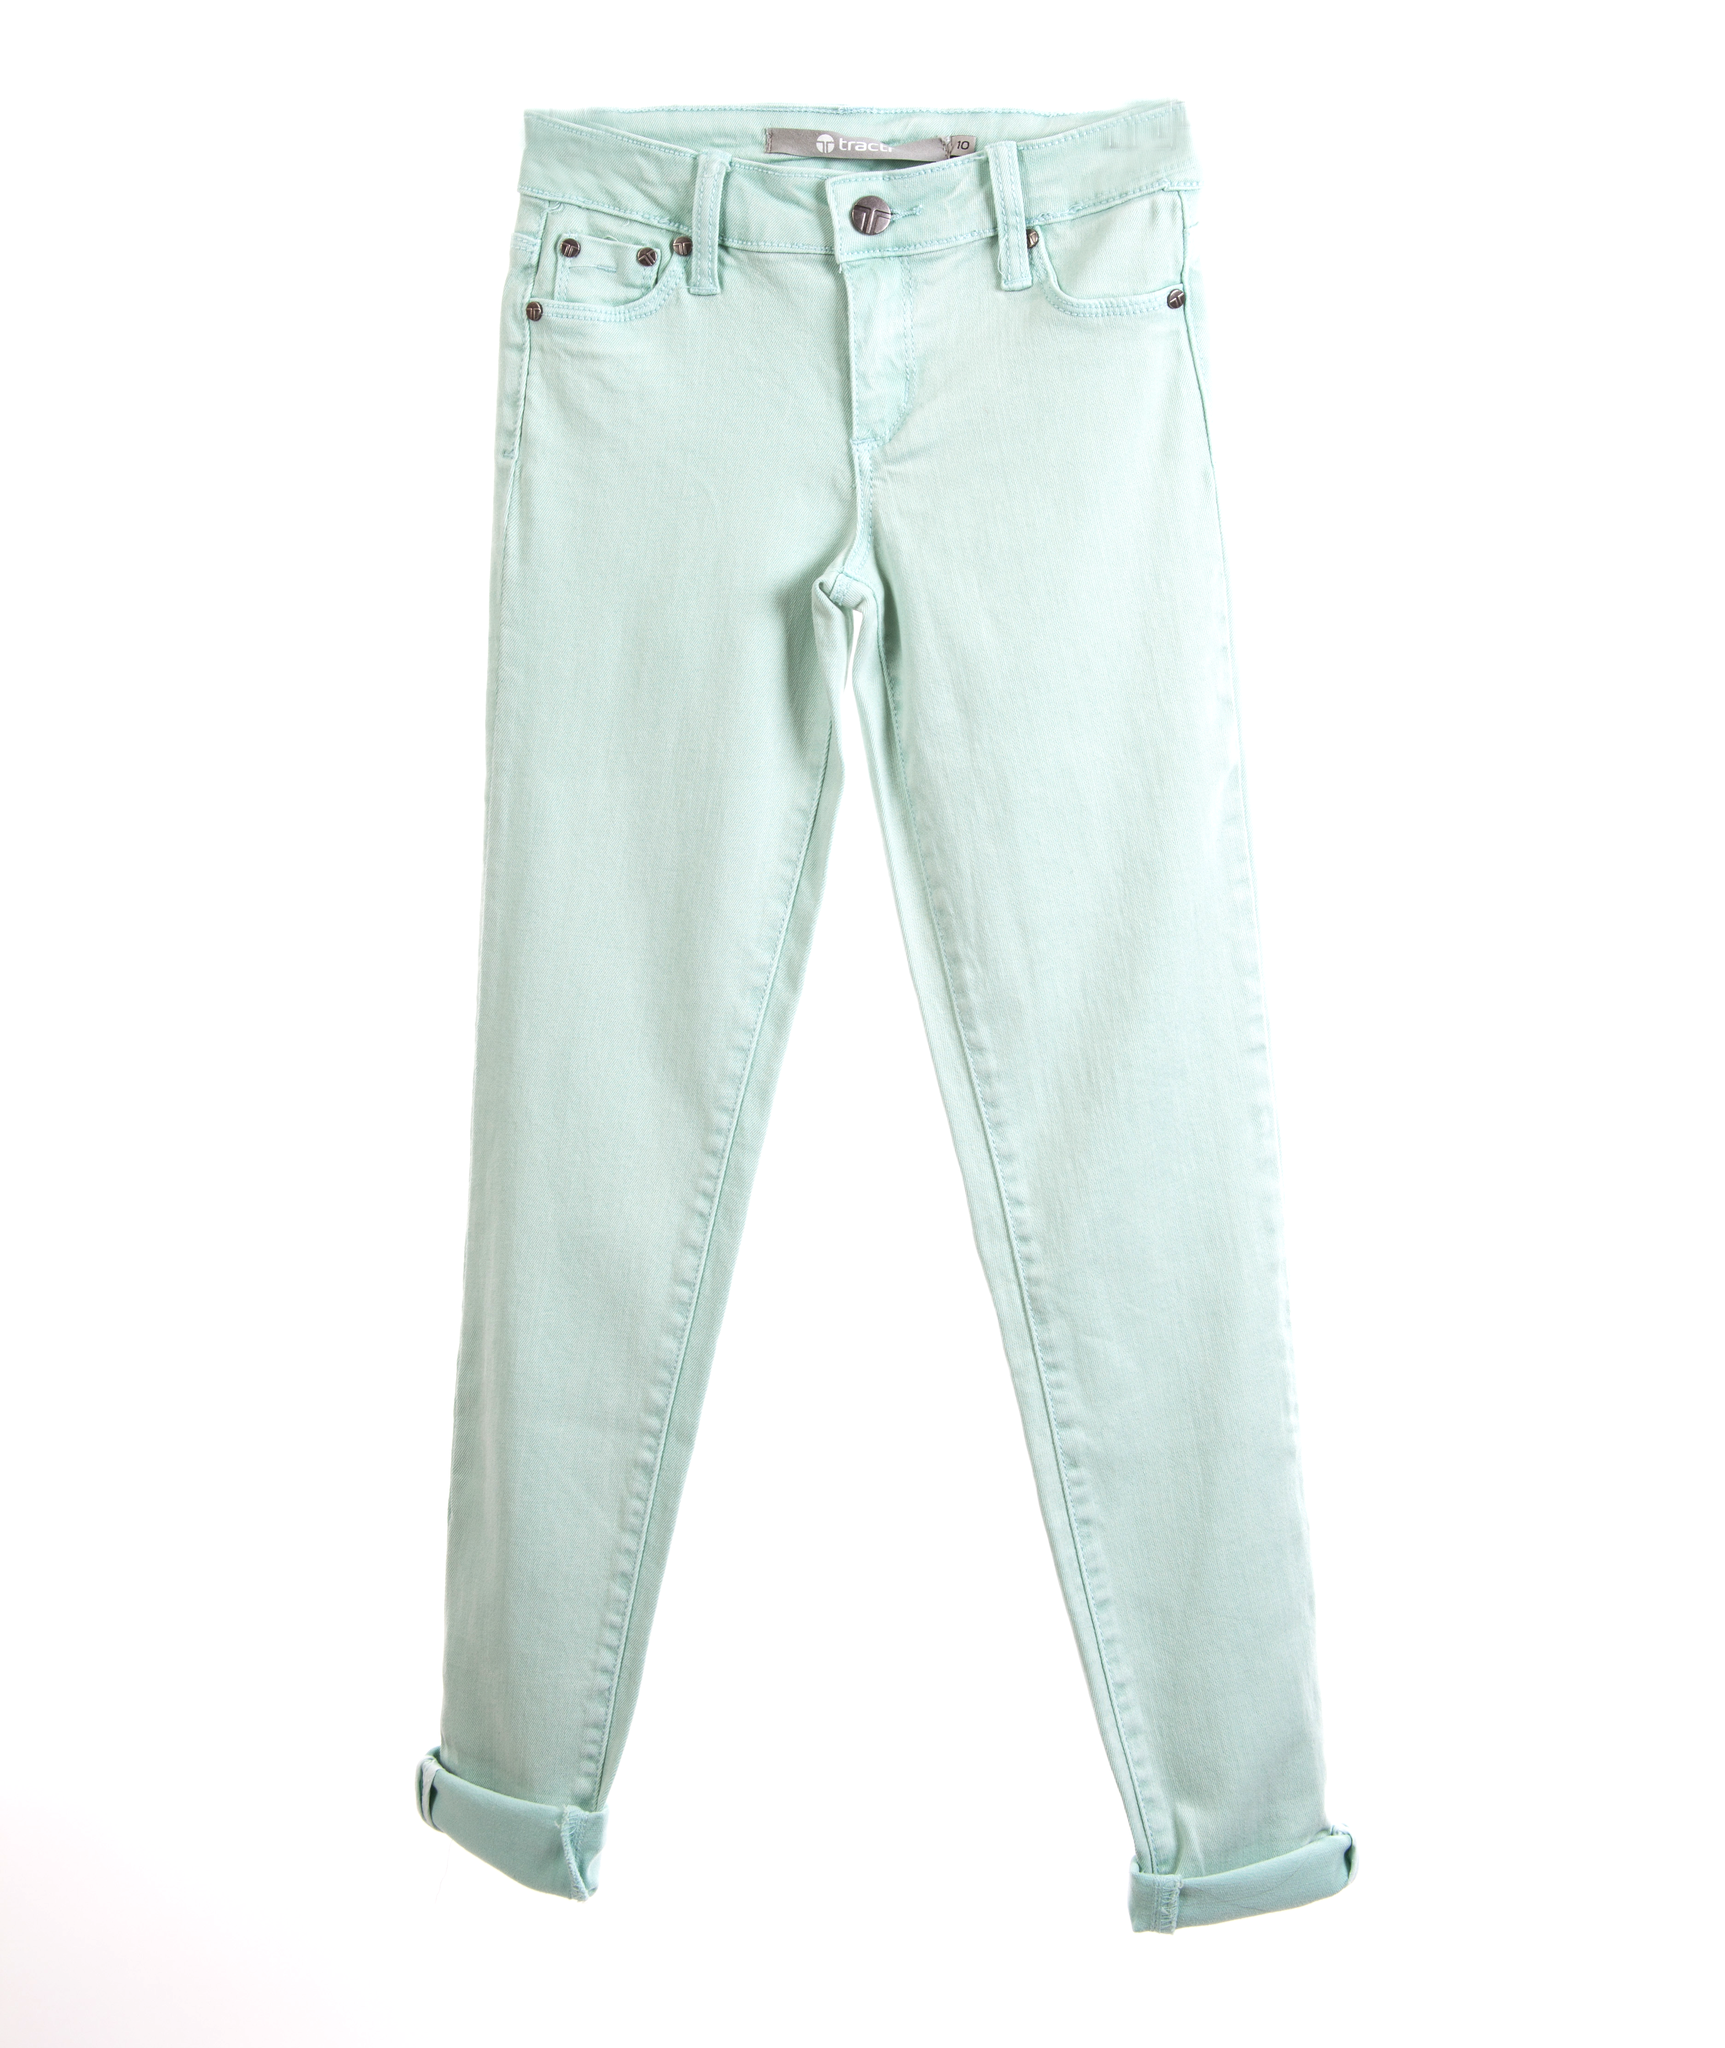 Tractr Girls Mint Green Ankle Crop Jeans